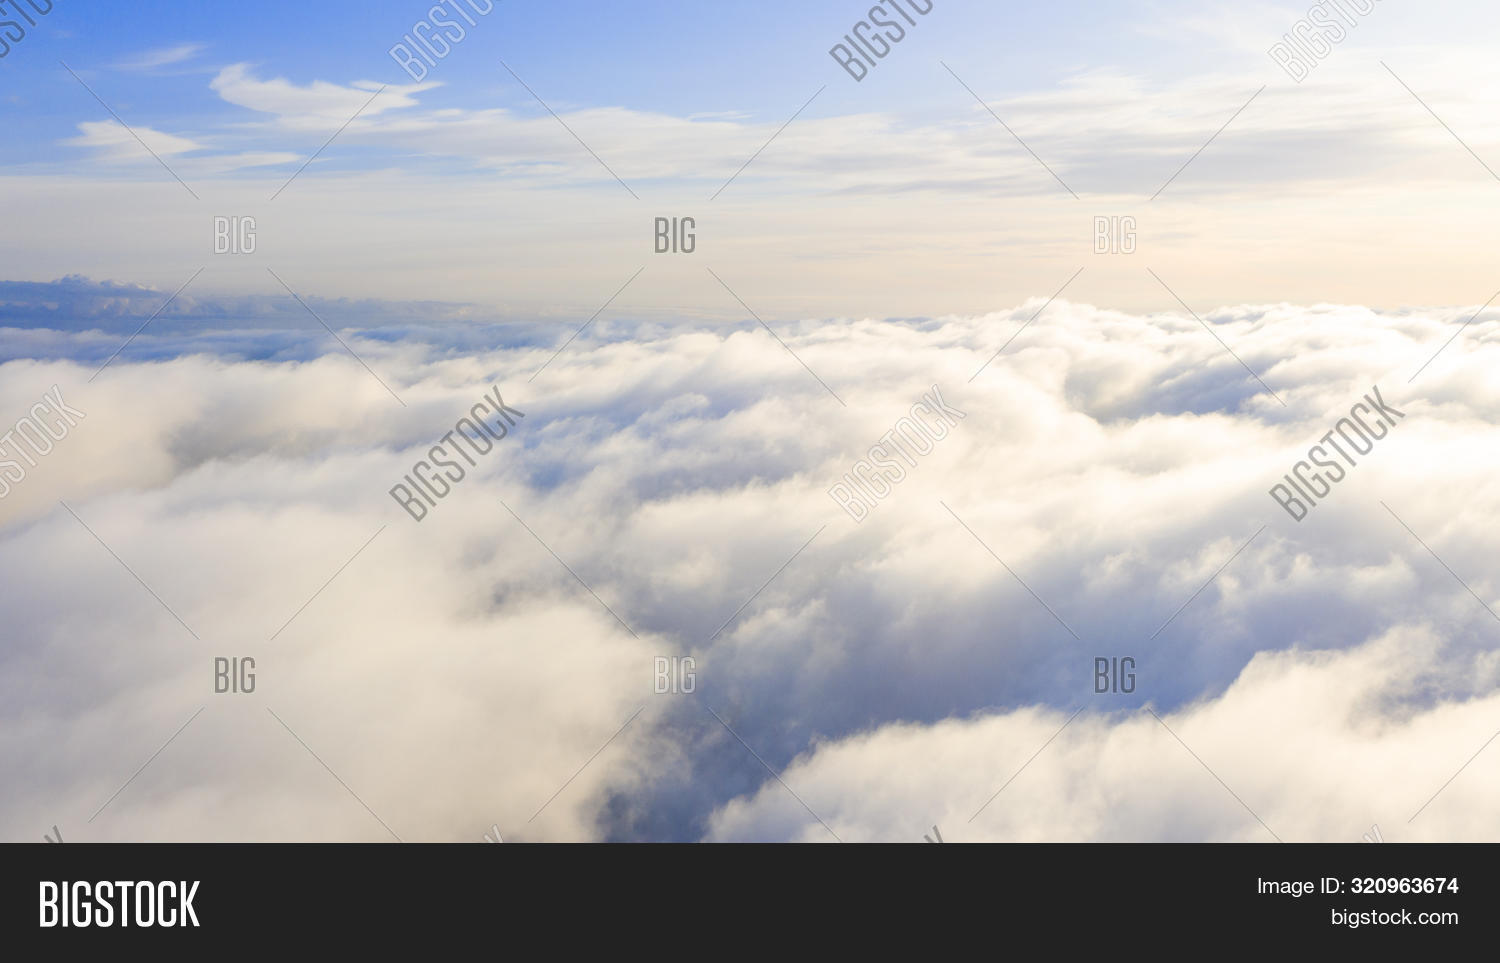 aerial,air,airplane,atmosphere,background,beautiful,bird,blue,bright,clear,cloud,cloudscape,dramatic,drone,empty,environment,eye,fantasy,flying,freedom,heaven,high,lake,landscape,light,meteorology,nature,over,overcast,panorama,pattern,plane,sea,sky,softness,stratosphere,summer,sun,sunlight,sunny,sunset,textured,top,view,wallpaper,weather,white,wind,window